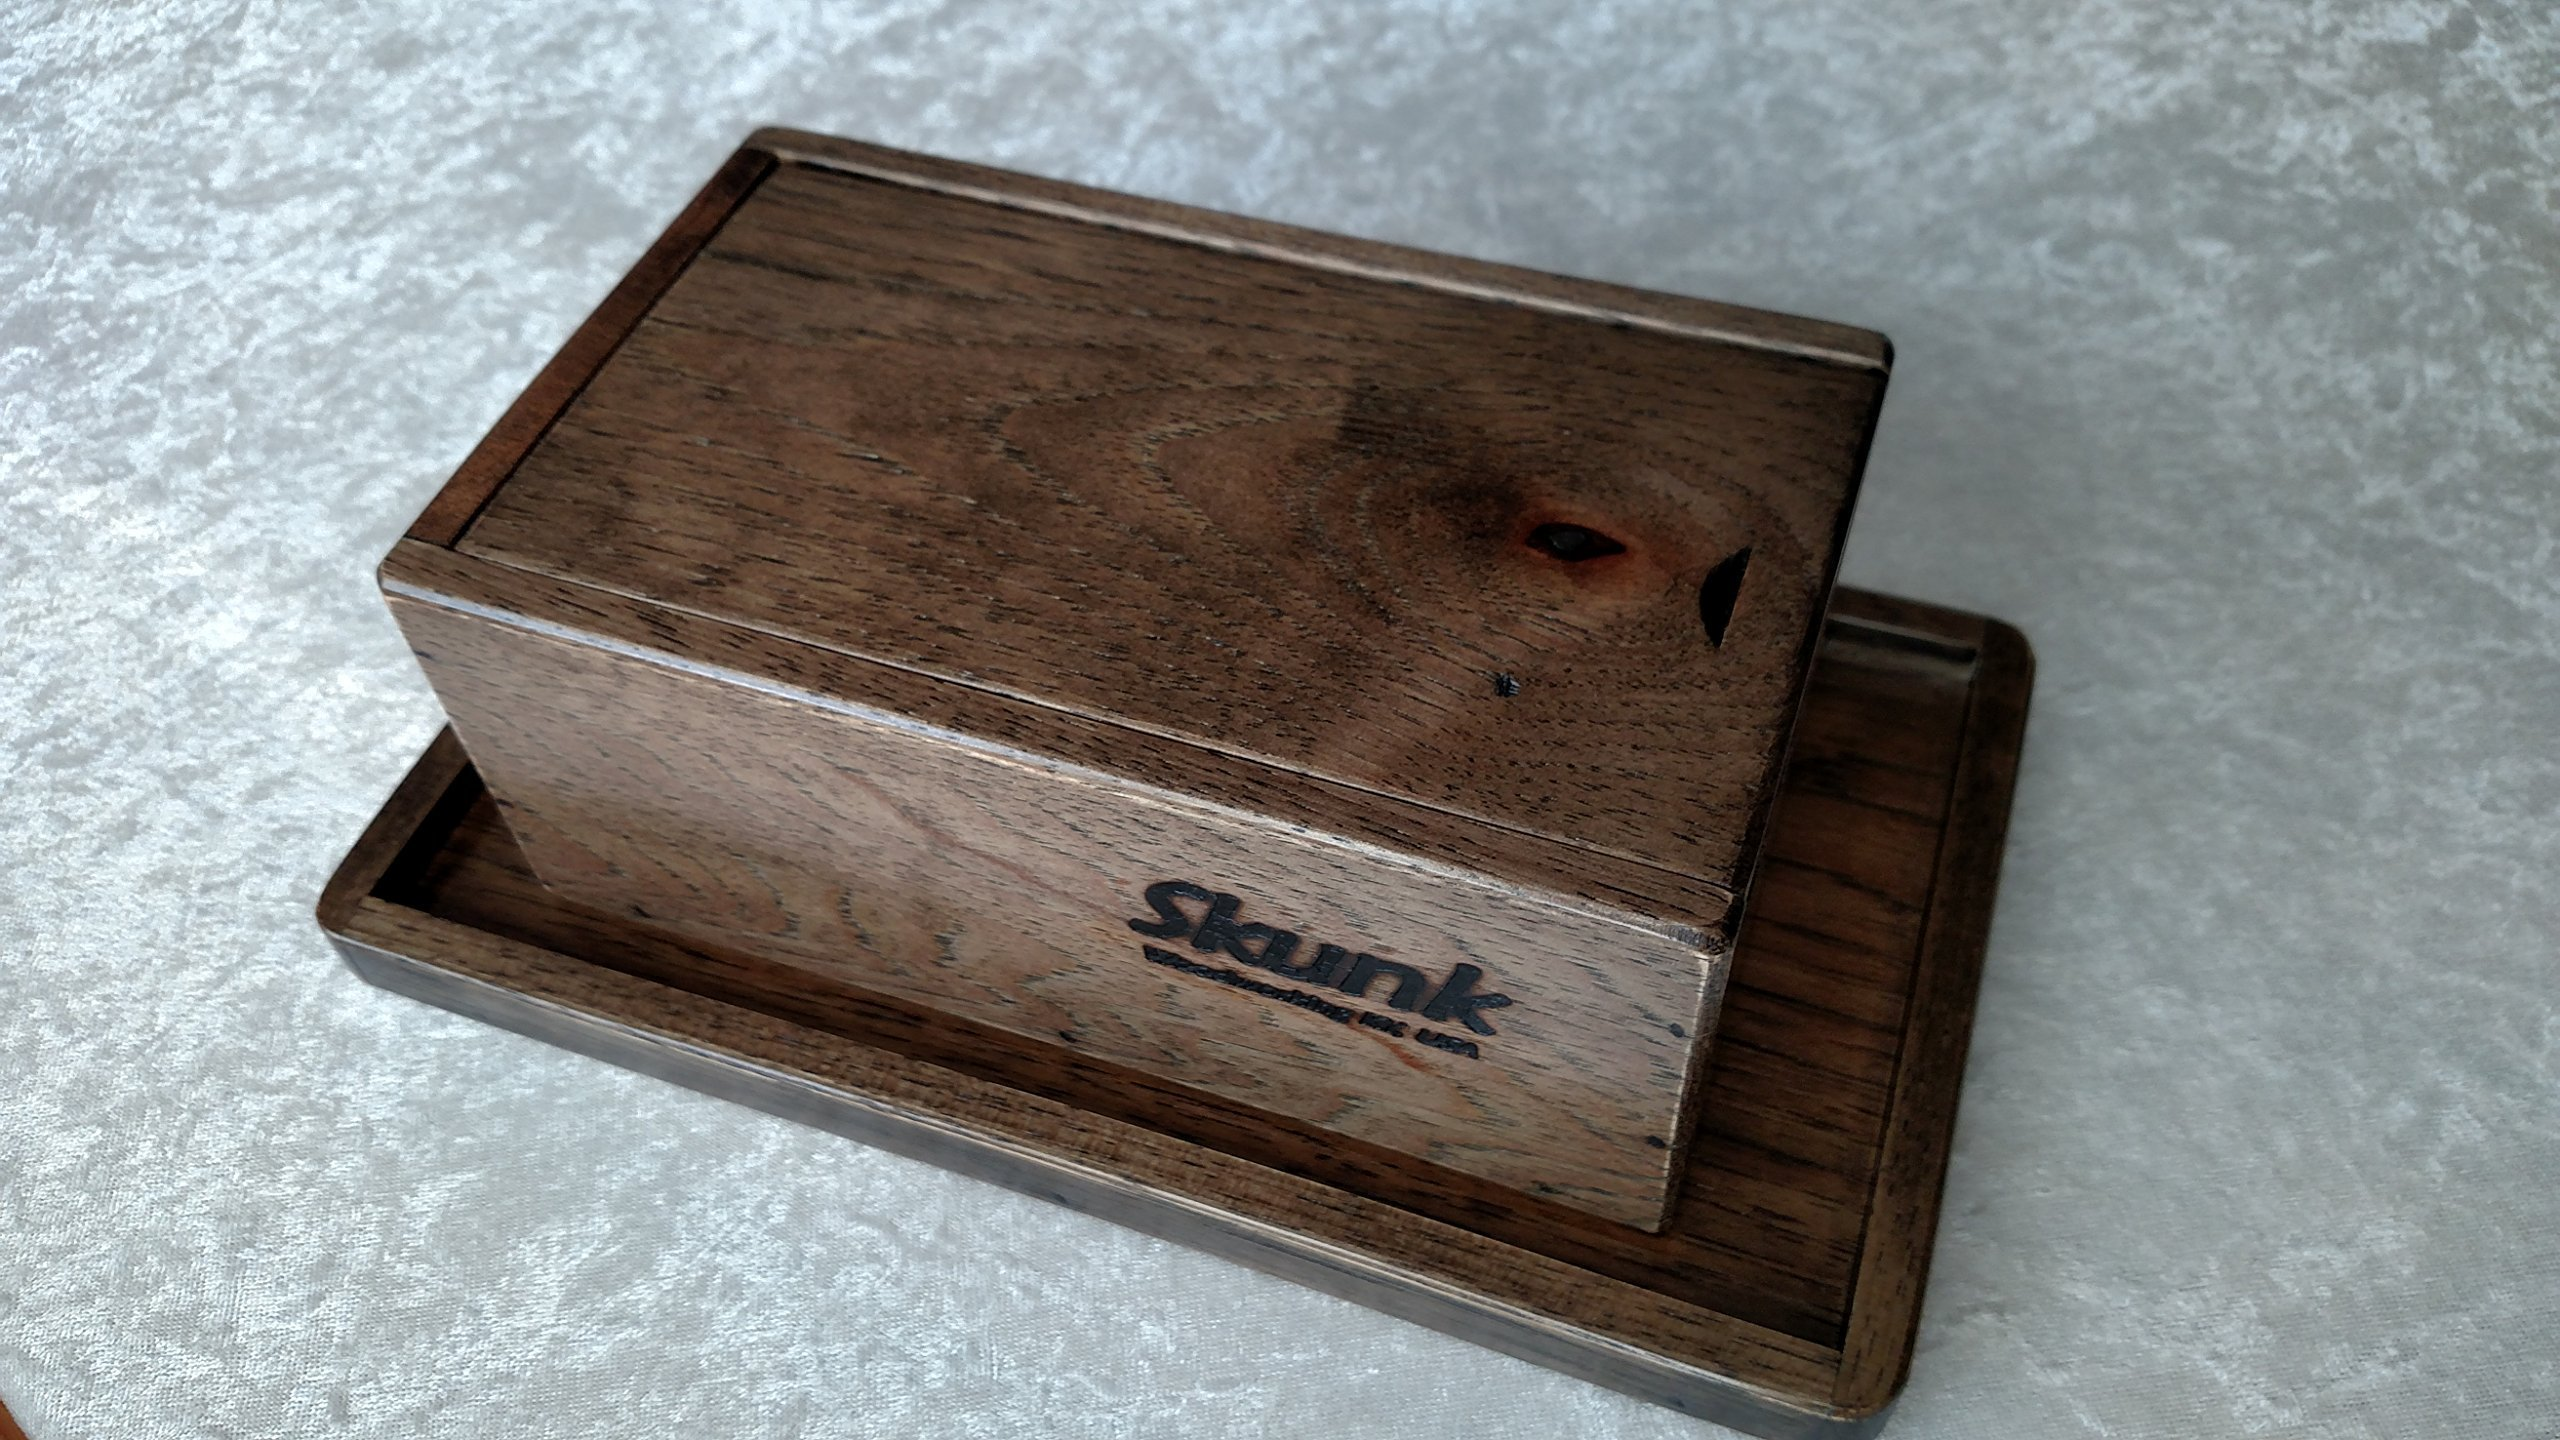 Black Hickory Stash Box and Rolling Tray Gift Set by Skunk Woodworking